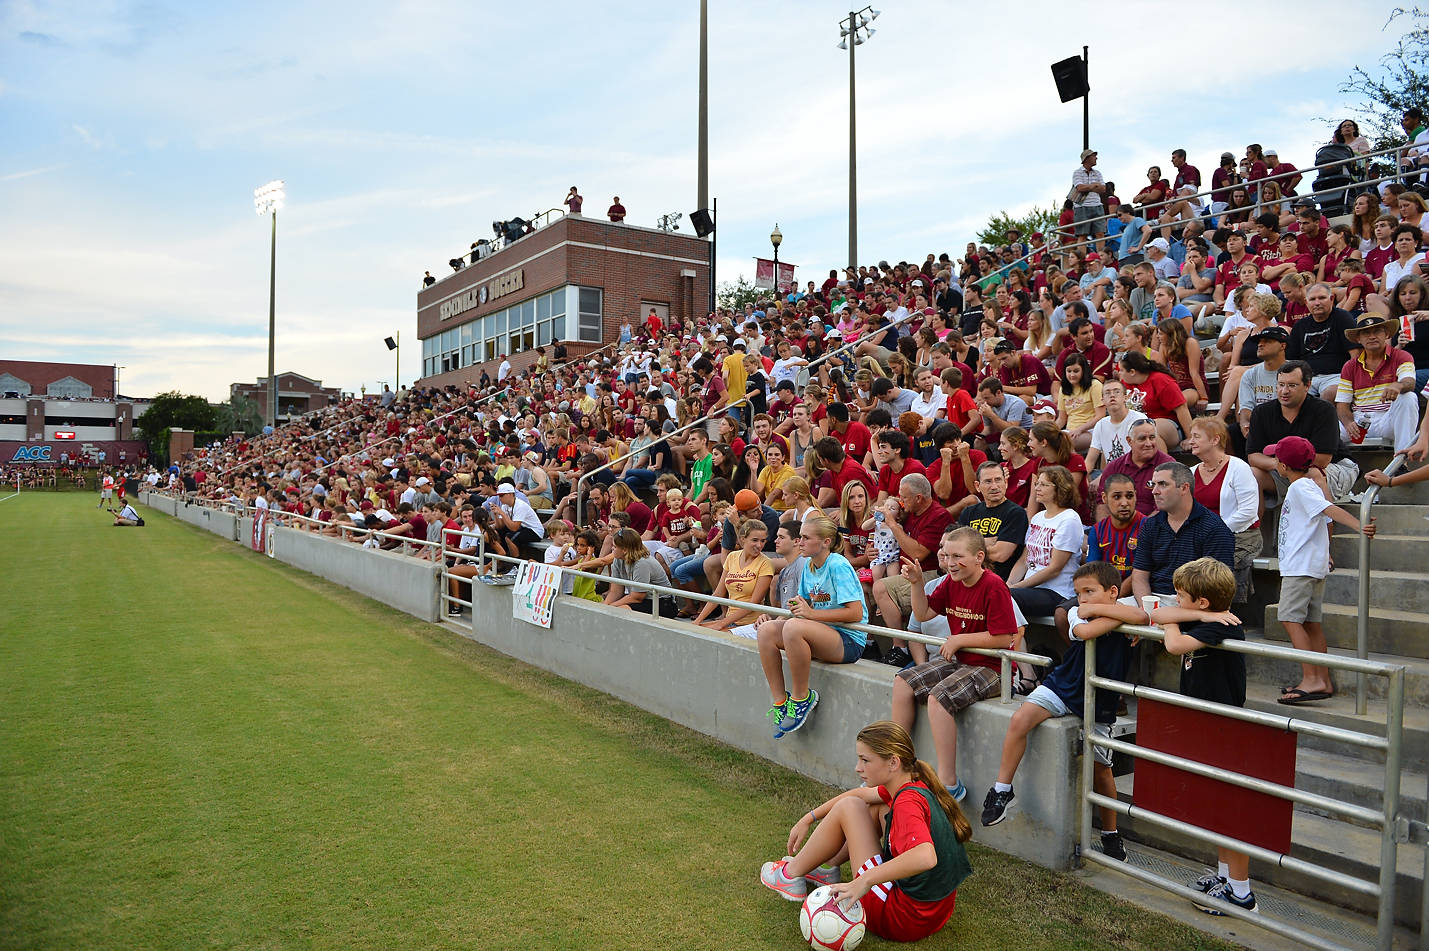 A packed crowd of 2,243 on hand to watch FSU's 1-0 victory over Florida.